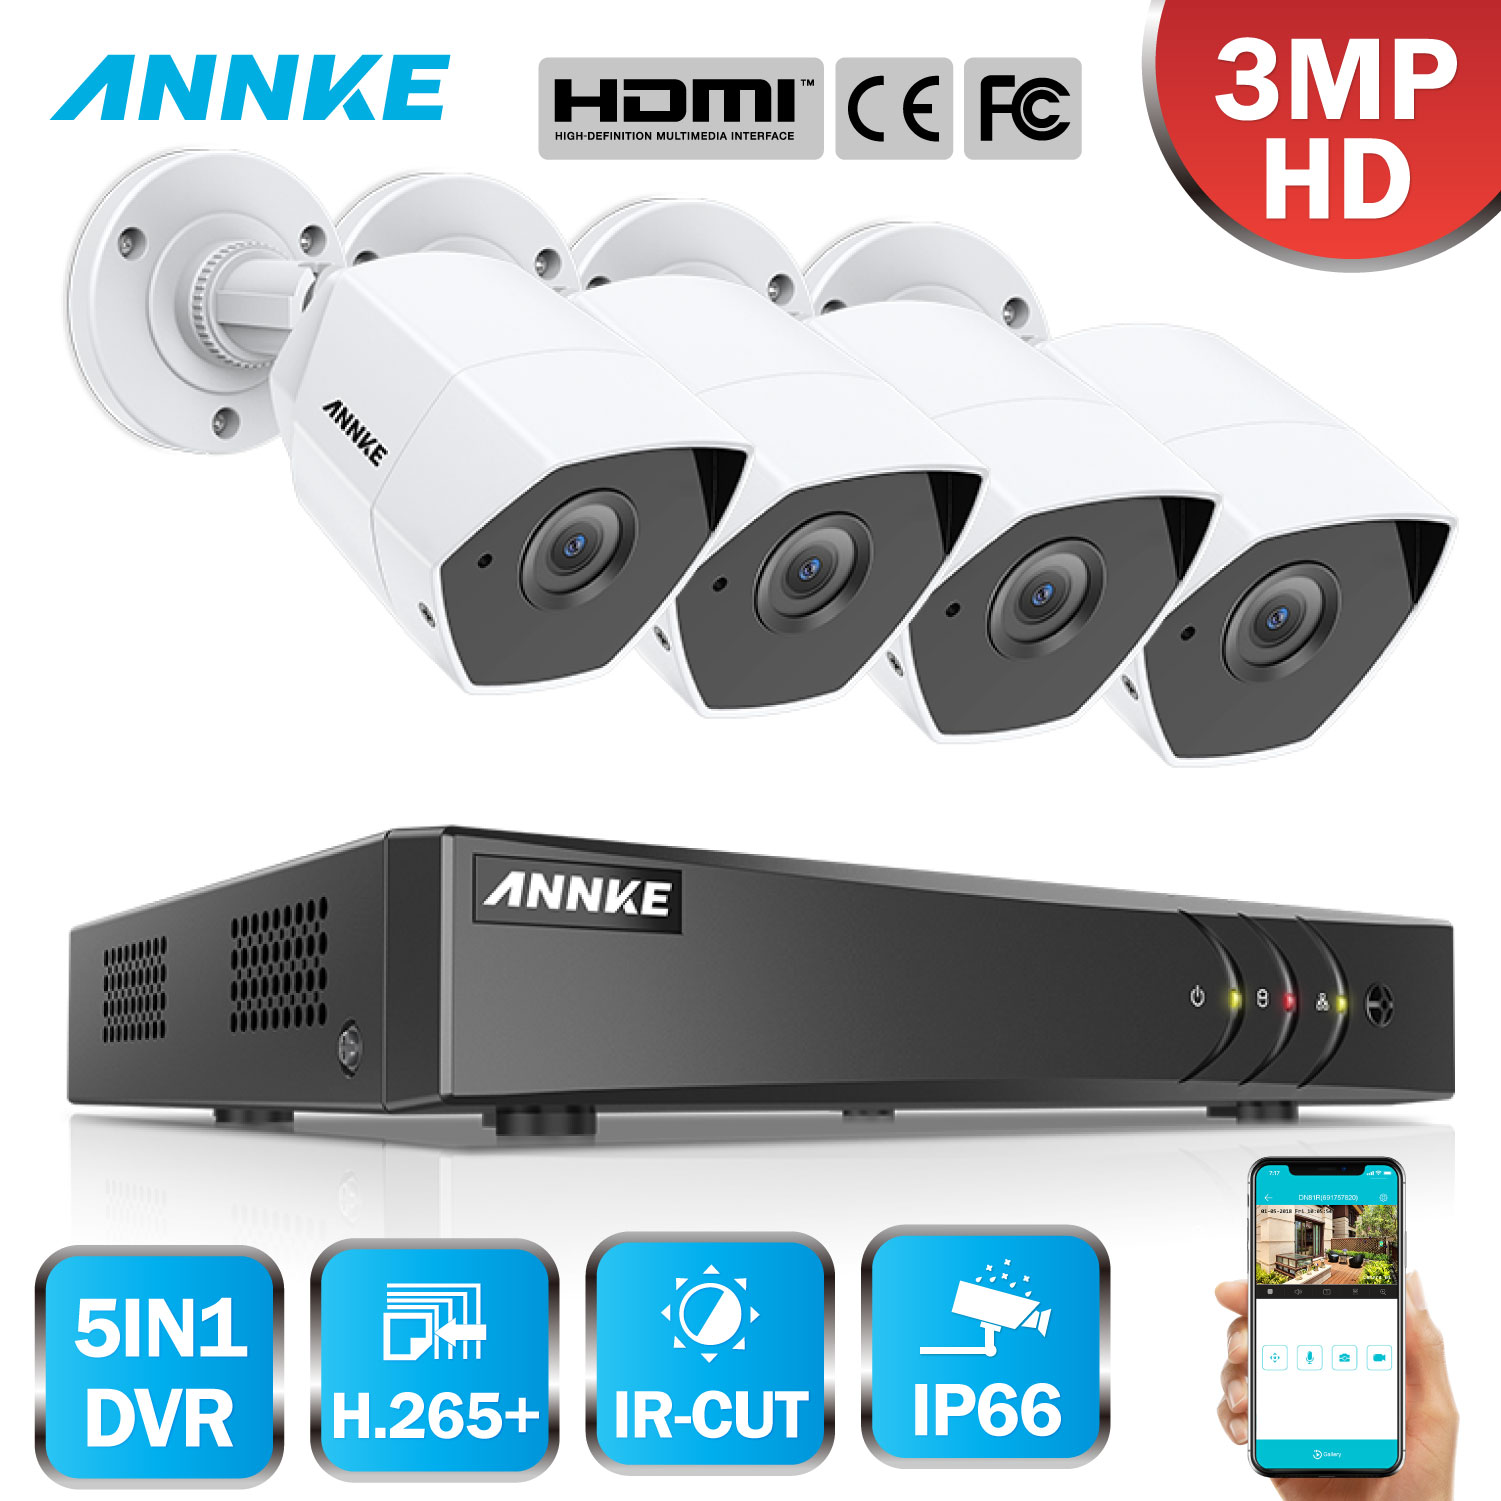 ANNKE FHD 8CH 3MP 5in1 Security DVR System CCTV Kit 4pcs Weatherproof Outdoor Surveillance Bullet Camera